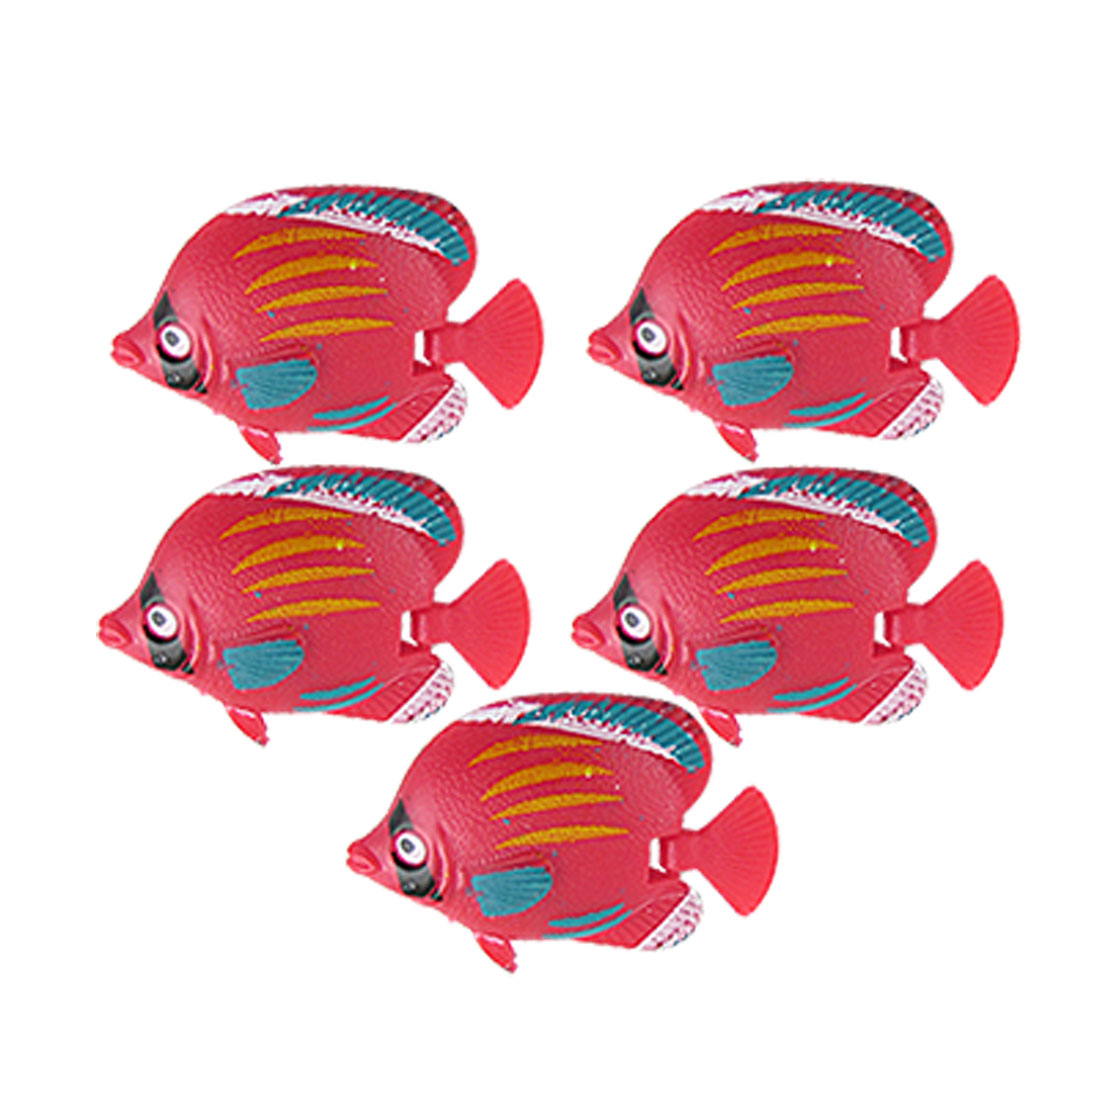 5 PCS Mini Red Plastic Tropical Fish Aquarium Floating Ornament Decor